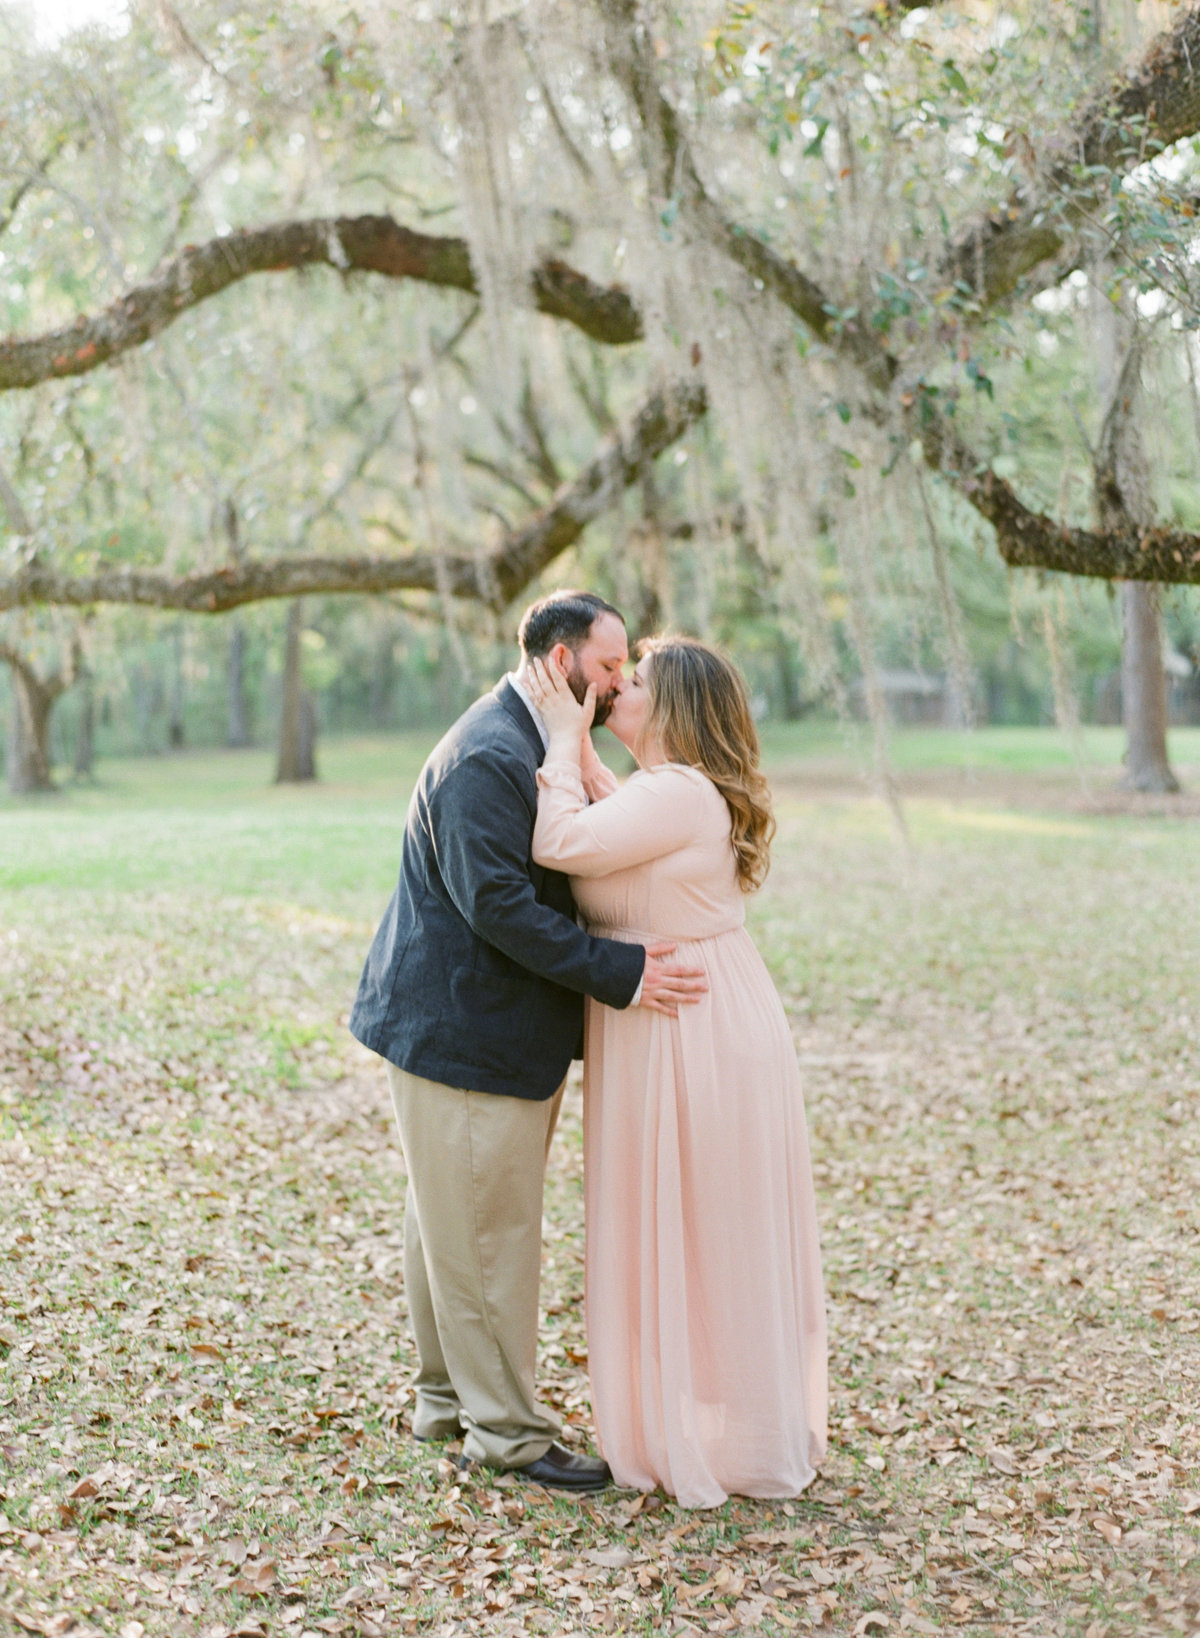 CourtneyWoodhamPhoto-239